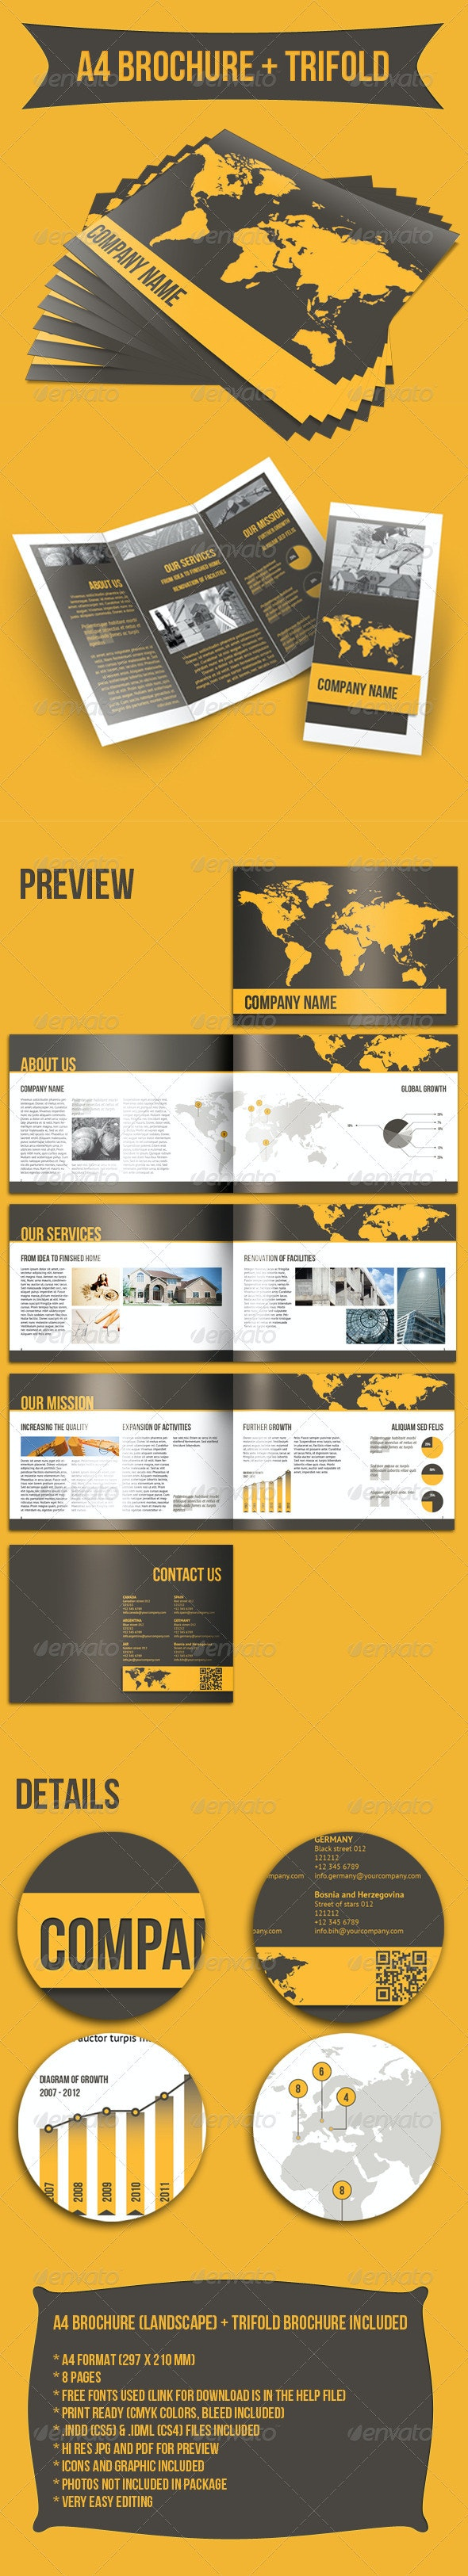 A4 Brochure + Trifold Brochure - Corporate Brochures